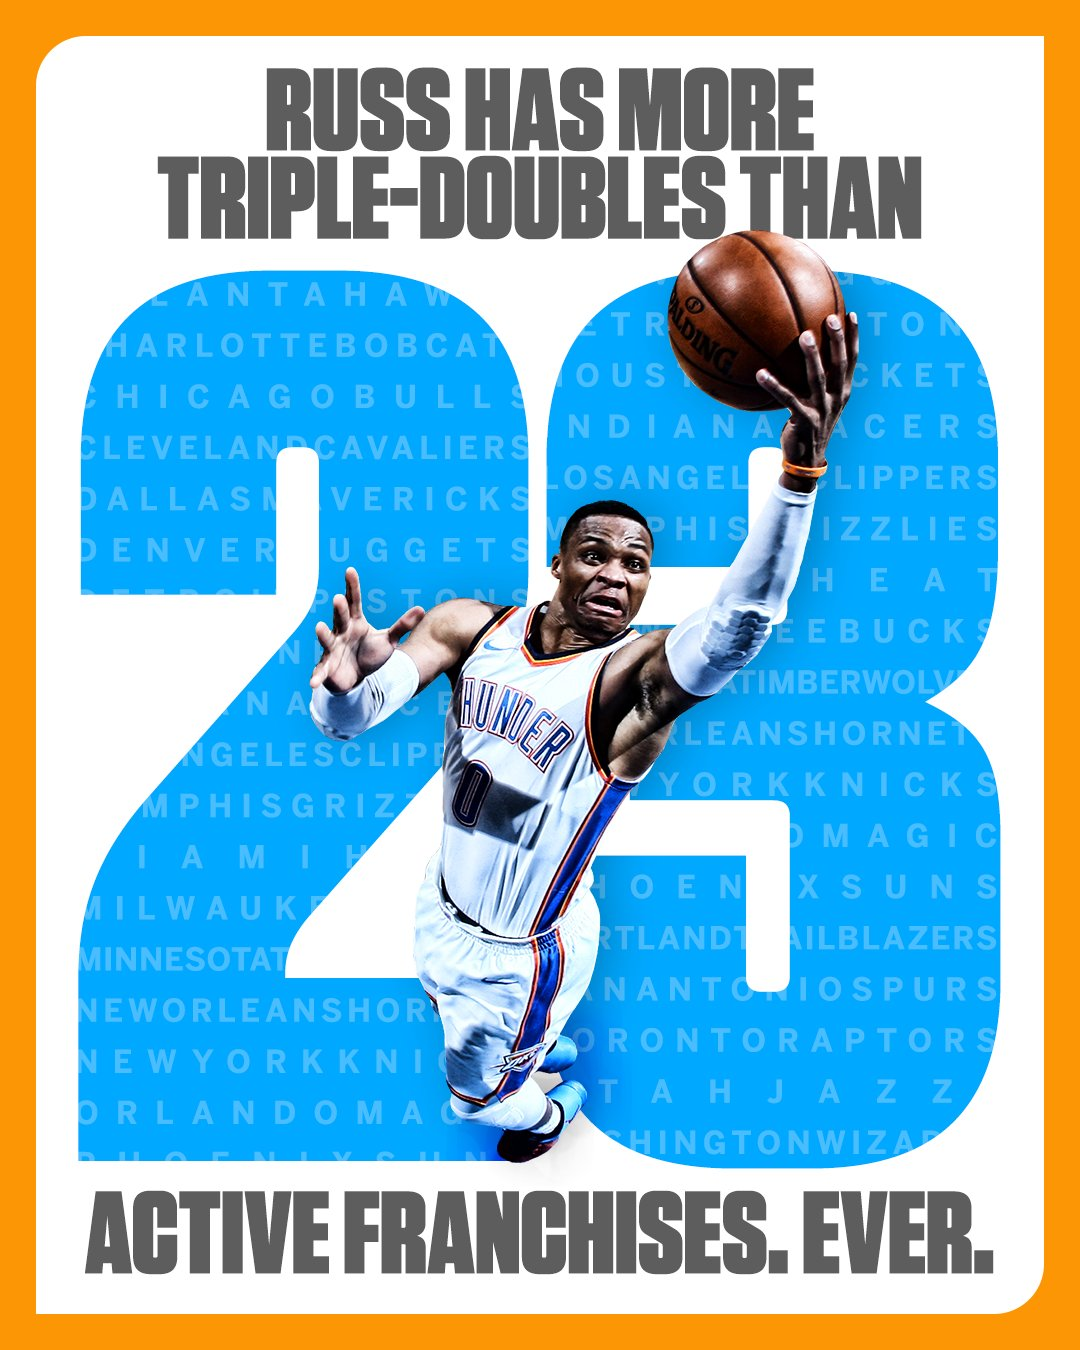 Kings Lakers Celtics 76ers Warriors Nets  The only NBA FRANCHISES with more triple-doubles than @russwest44. https://t.co/UMRRjdkEfx